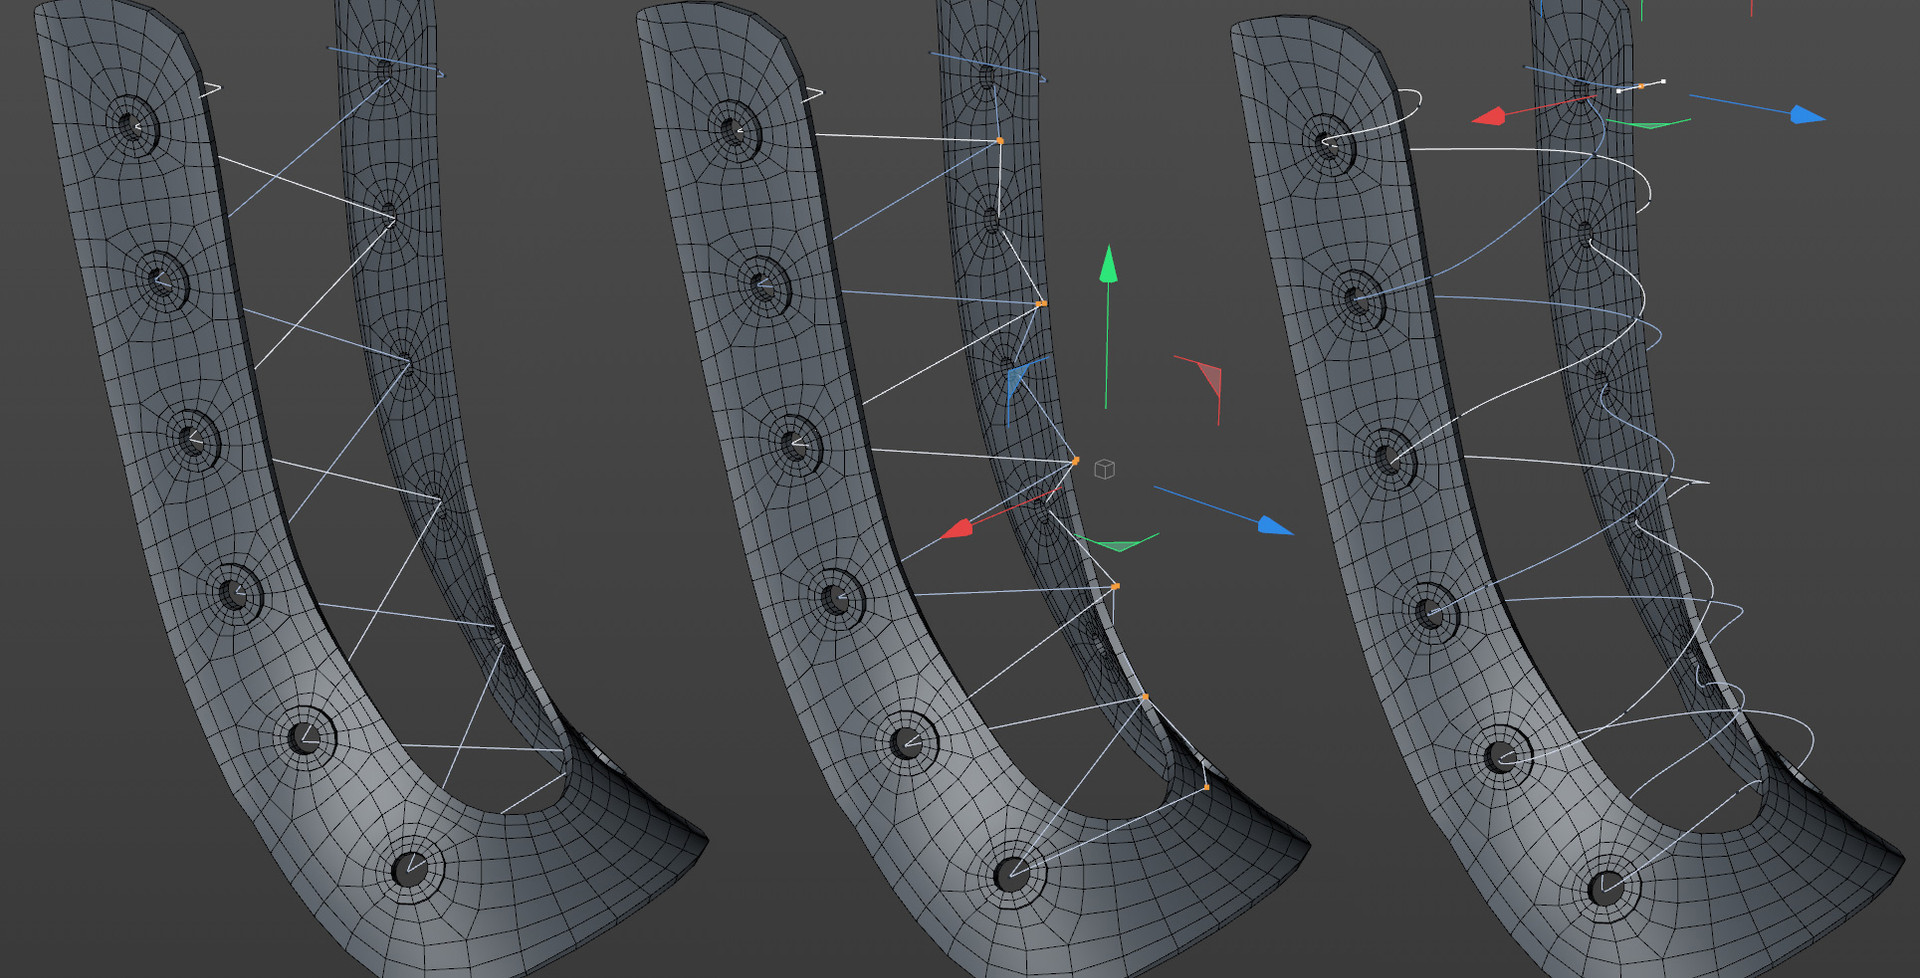 Starting the laces with linear splines to get the general positioning. Extra vertices added to pull the spline in front of the tongue. All vertices converted to soft interpolation and handles adjusted.